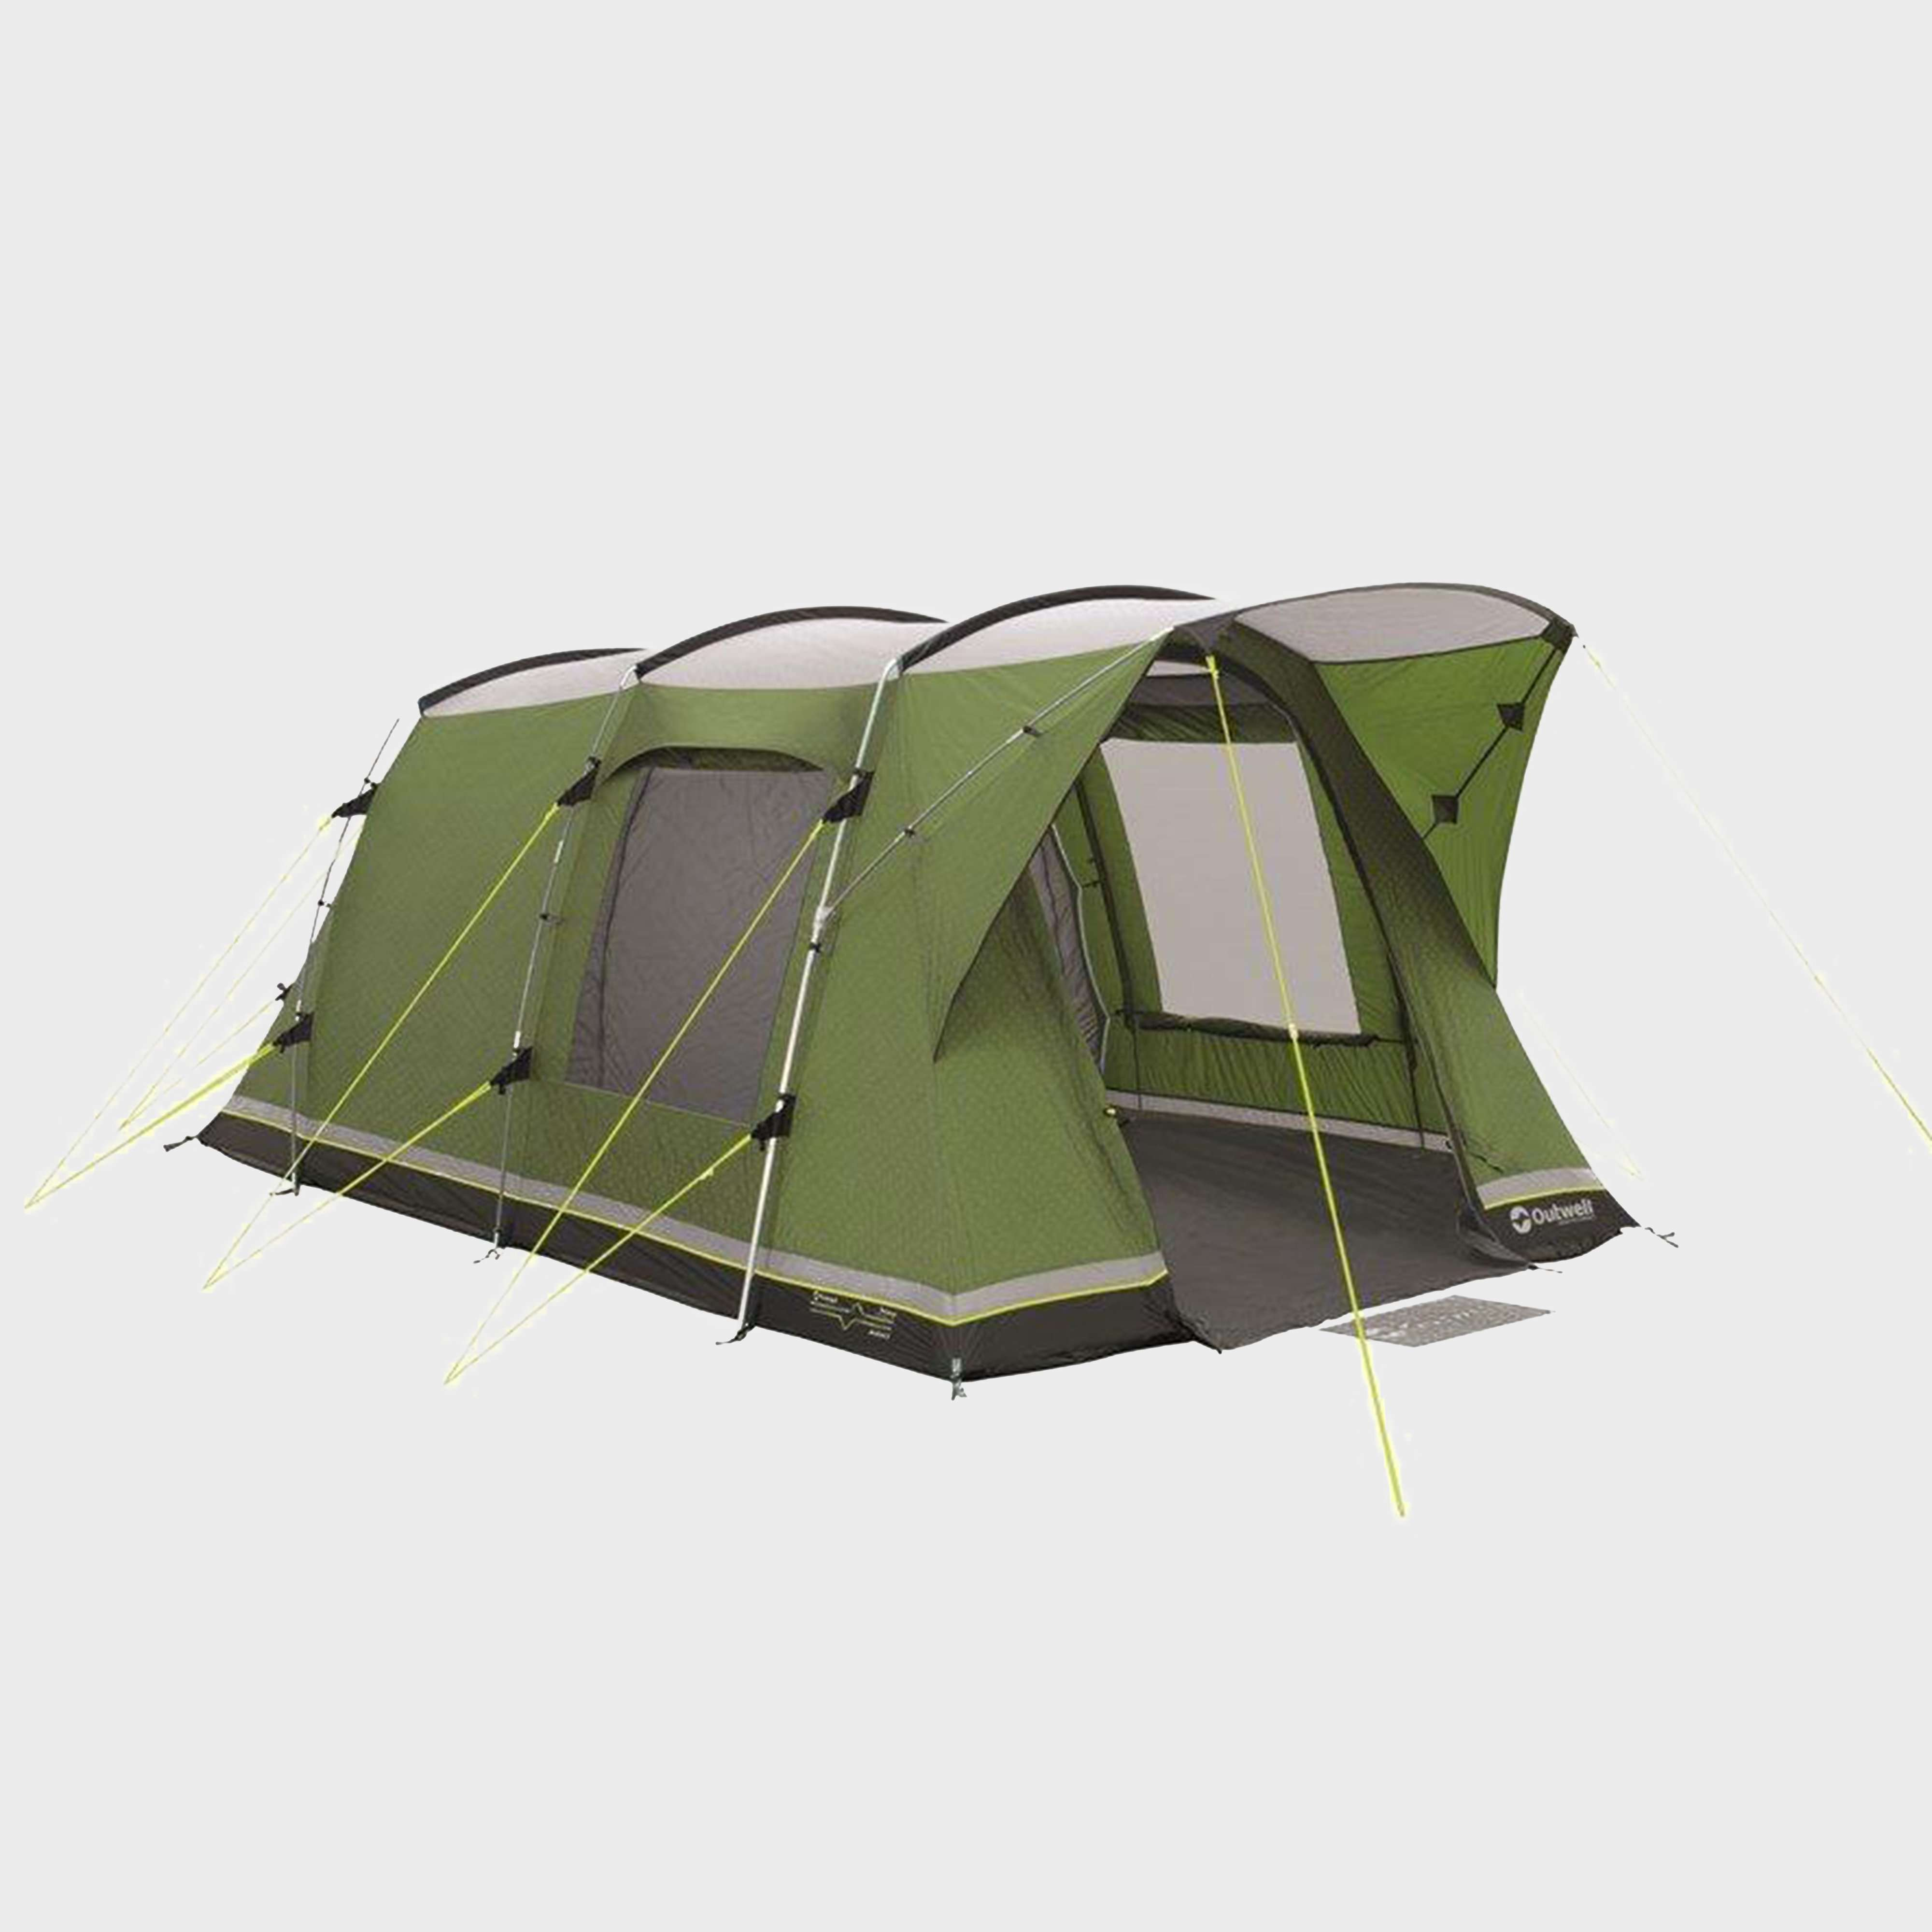 OUTWELL Birdland 3 Family Tent